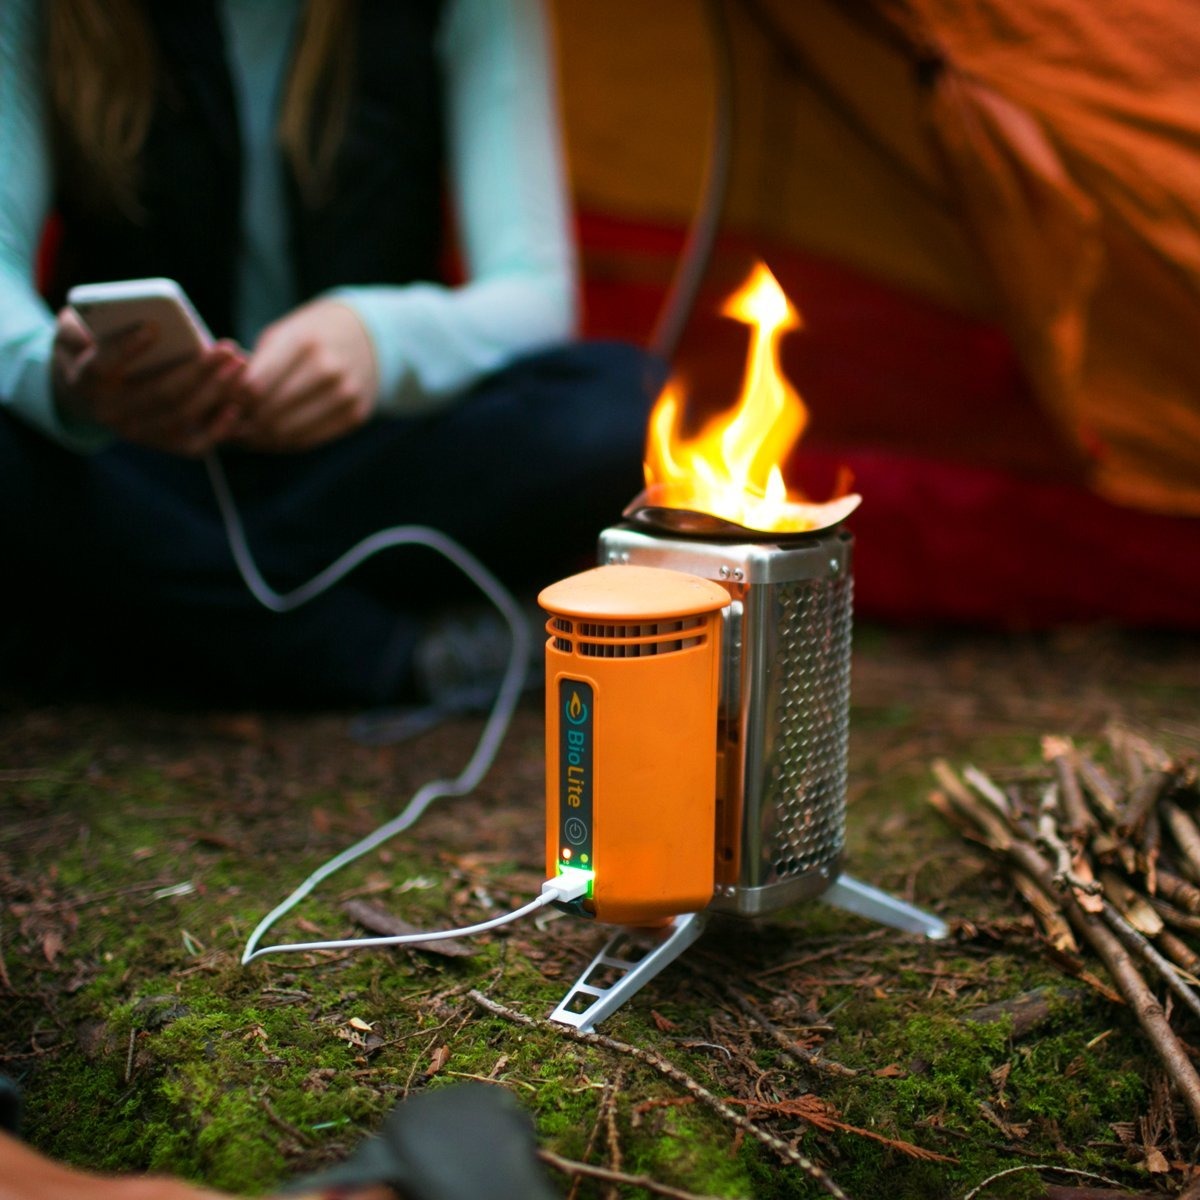 Billet Wood Burning Stove // Essential Outdoor Family Adventure Gear